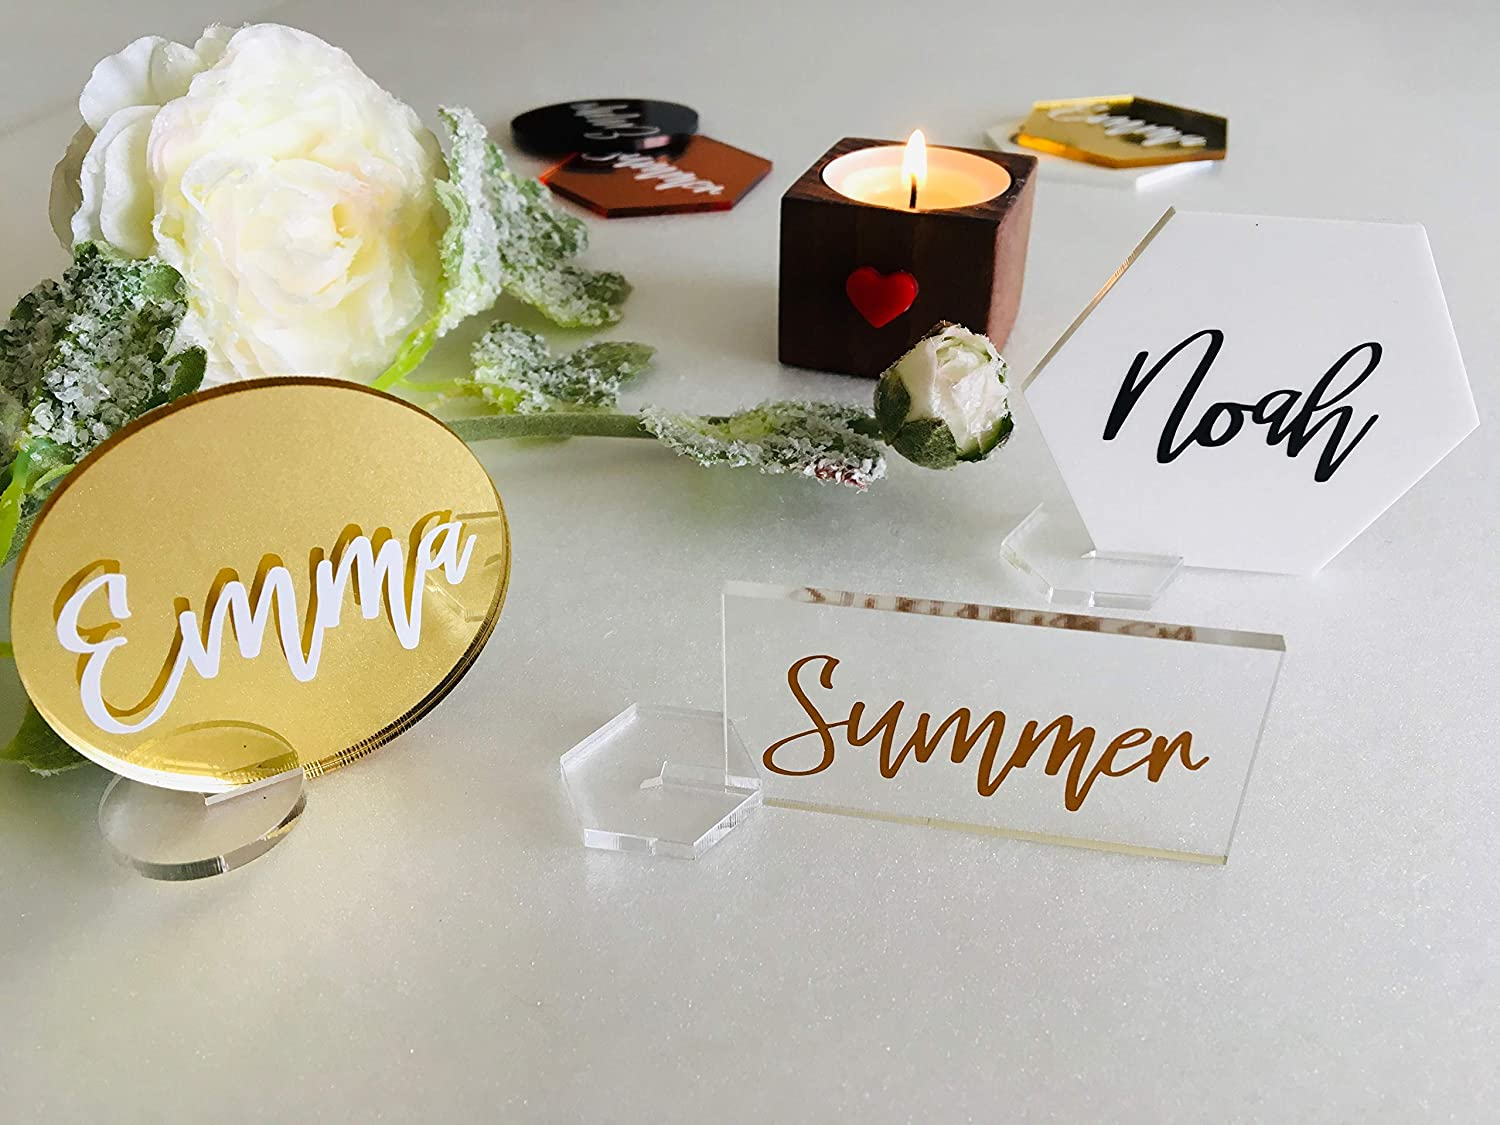 Rose Gold Mirror Names Guest Names Laser Cut Names Wedding table cards Place cards Rose Gold Mirror Names Wedding centerpiece names